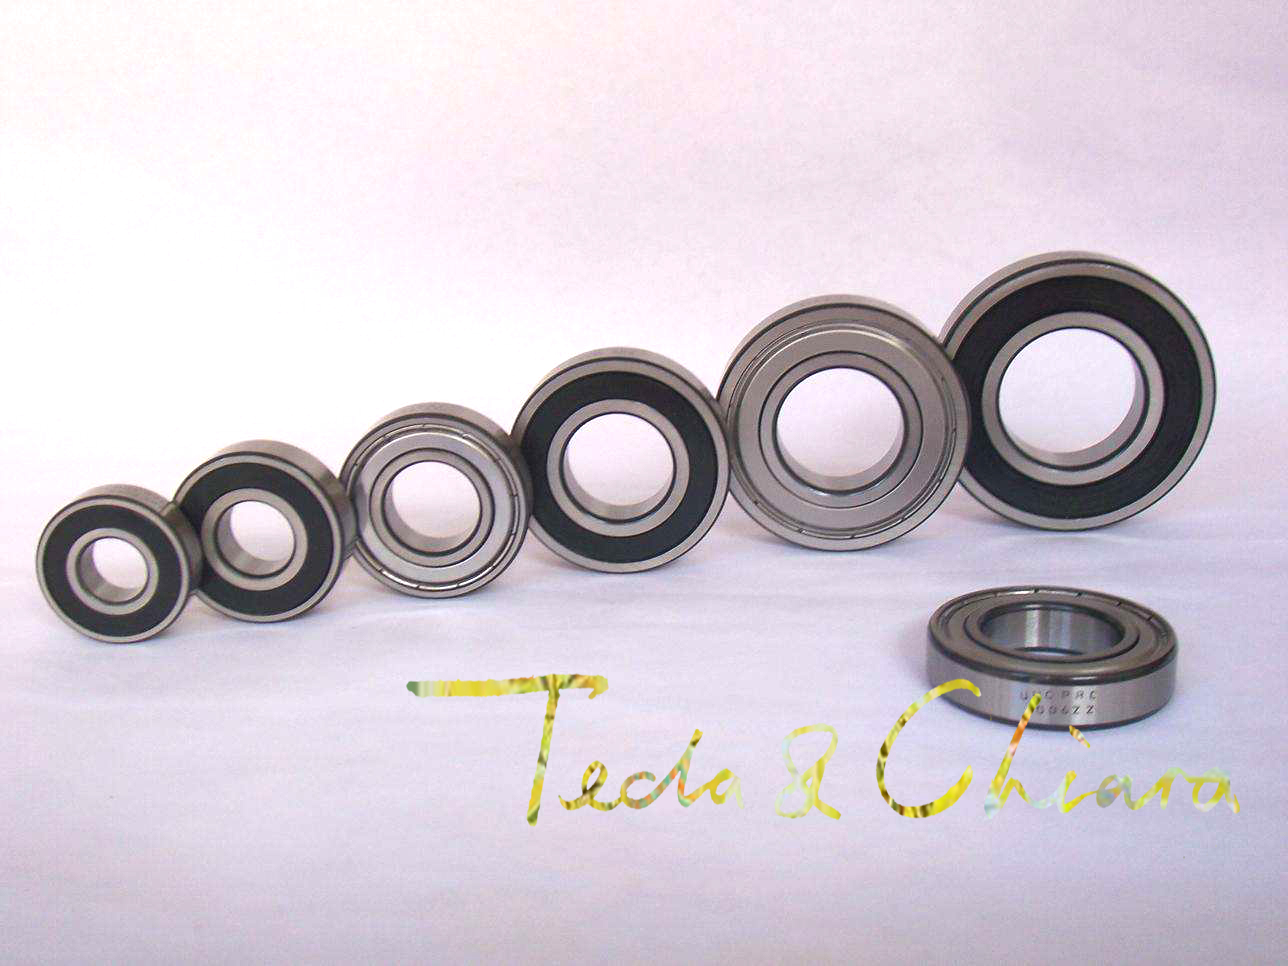 10Pcs 604 604ZZ 604RS 604-2Z 604Z 604-2RS ZZ RS RZ 2RZ Deep Groove Ball Bearings 4 x 12 x 4mm High Quality 604 604zz 604rs 604 2z 604z 604 2rs zz rs rz 2rz deep groove ball bearings 4 x 12 x 4mm high quality